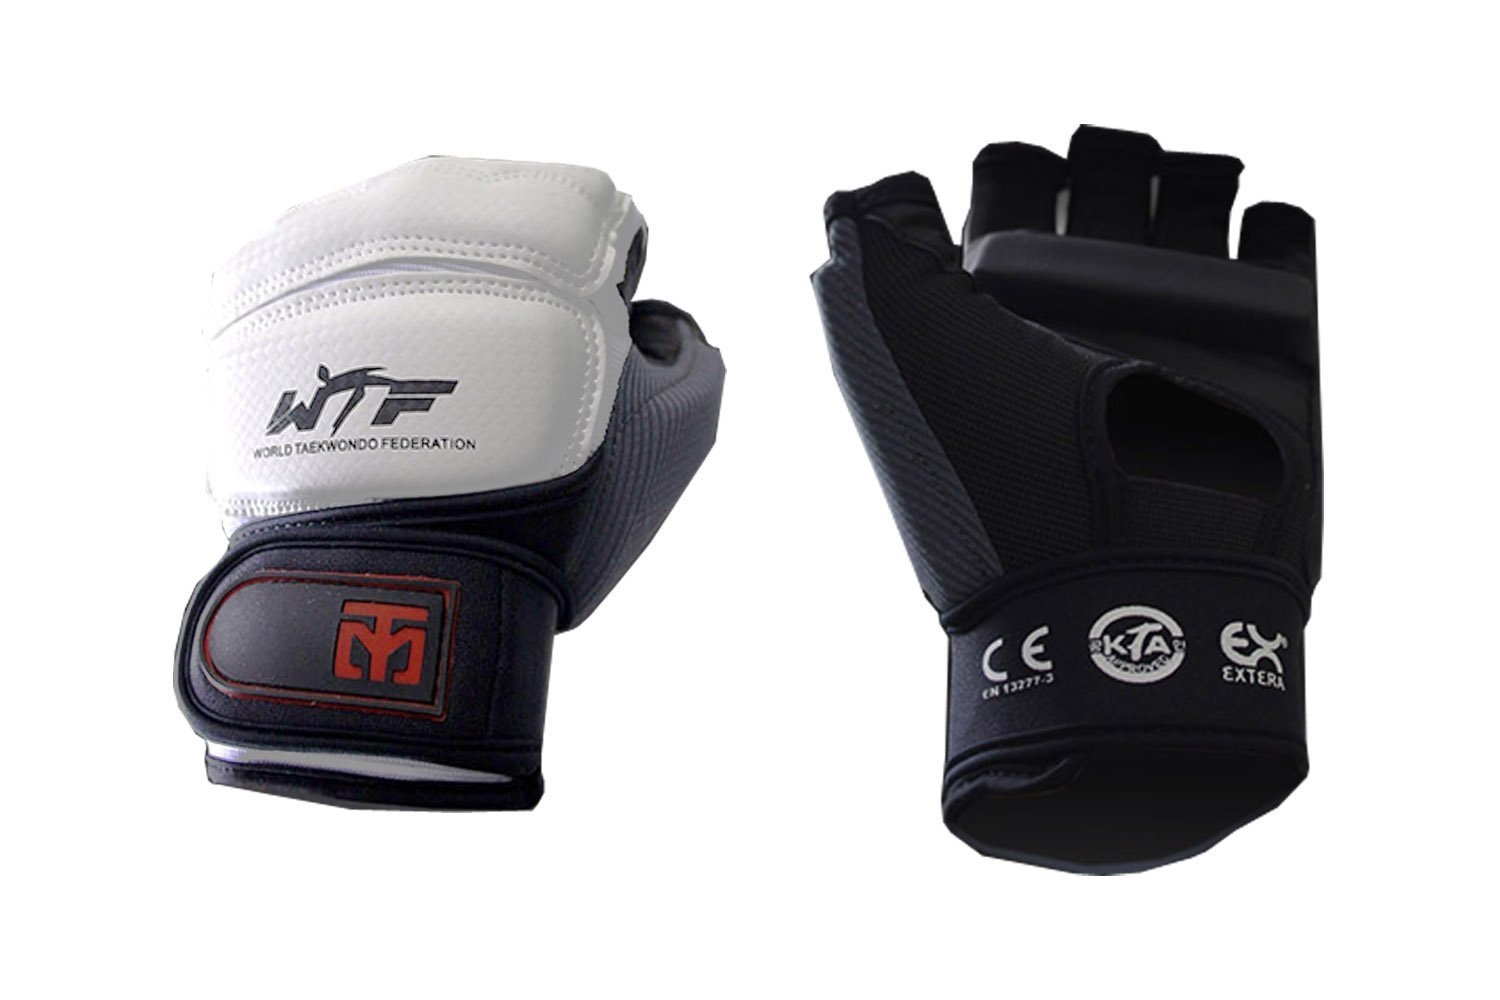 (New Product) Mooto Taekwondo Hand Protector Season2 WTF KTA Approved TKD Hand Gear XXS to XL Culture Maker